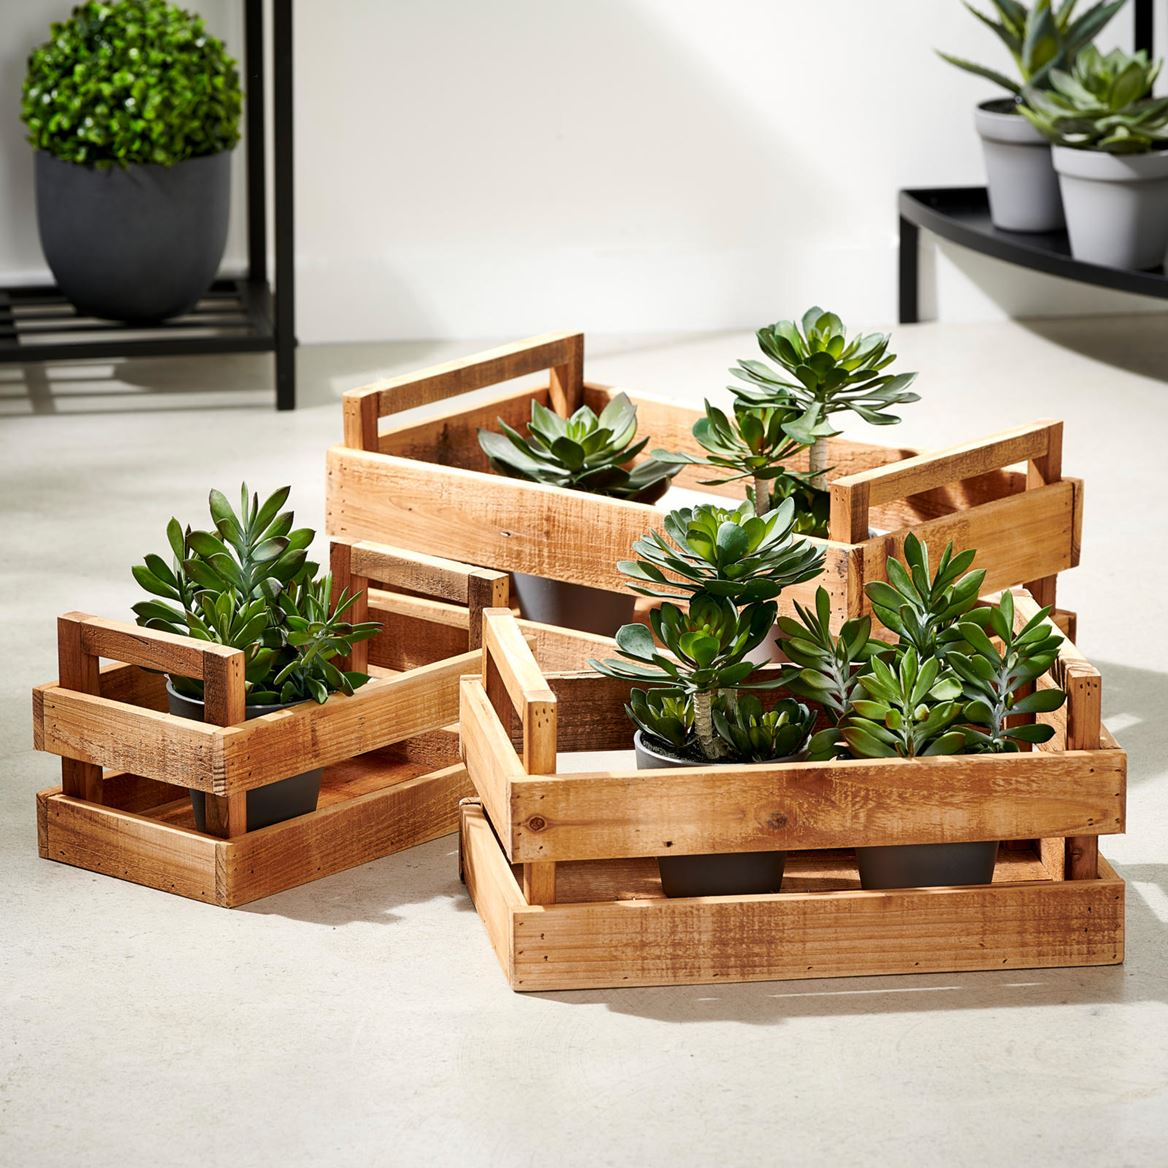 RECYCLE Caixa natural H 13 x W 37 x D 23 cm_recycle-caixa-natural-h-13-x-w-37-x-d-23-cm